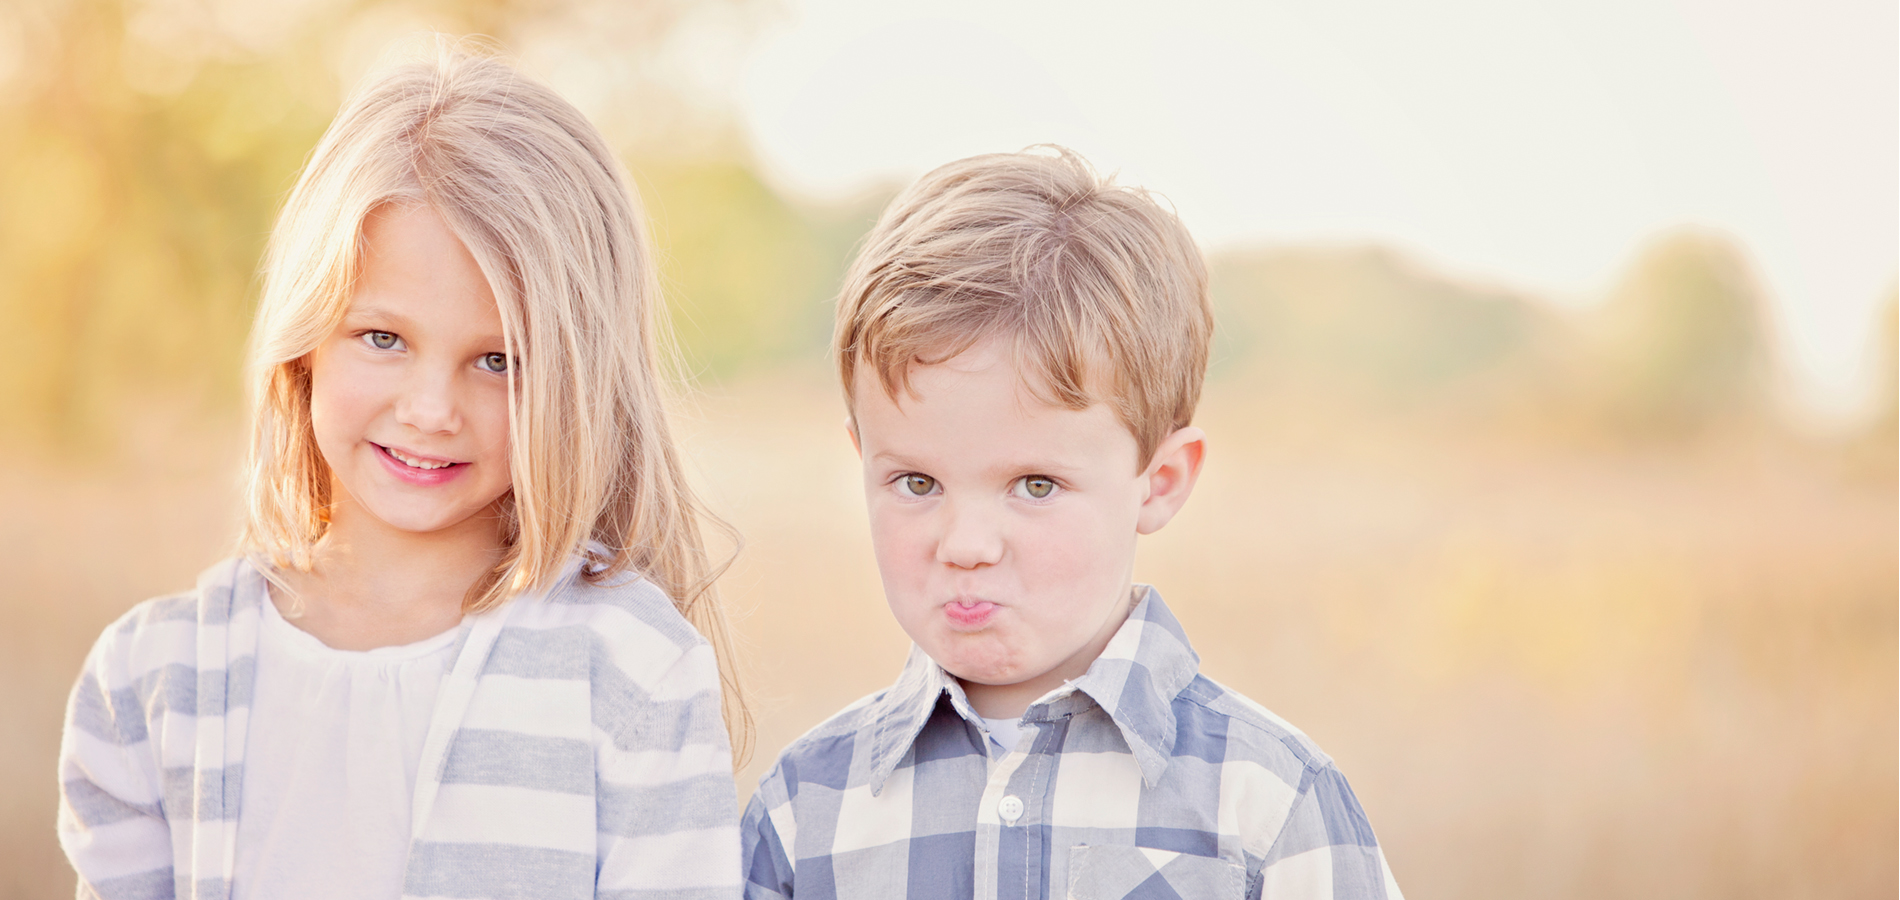 child-siblings-funny-candid